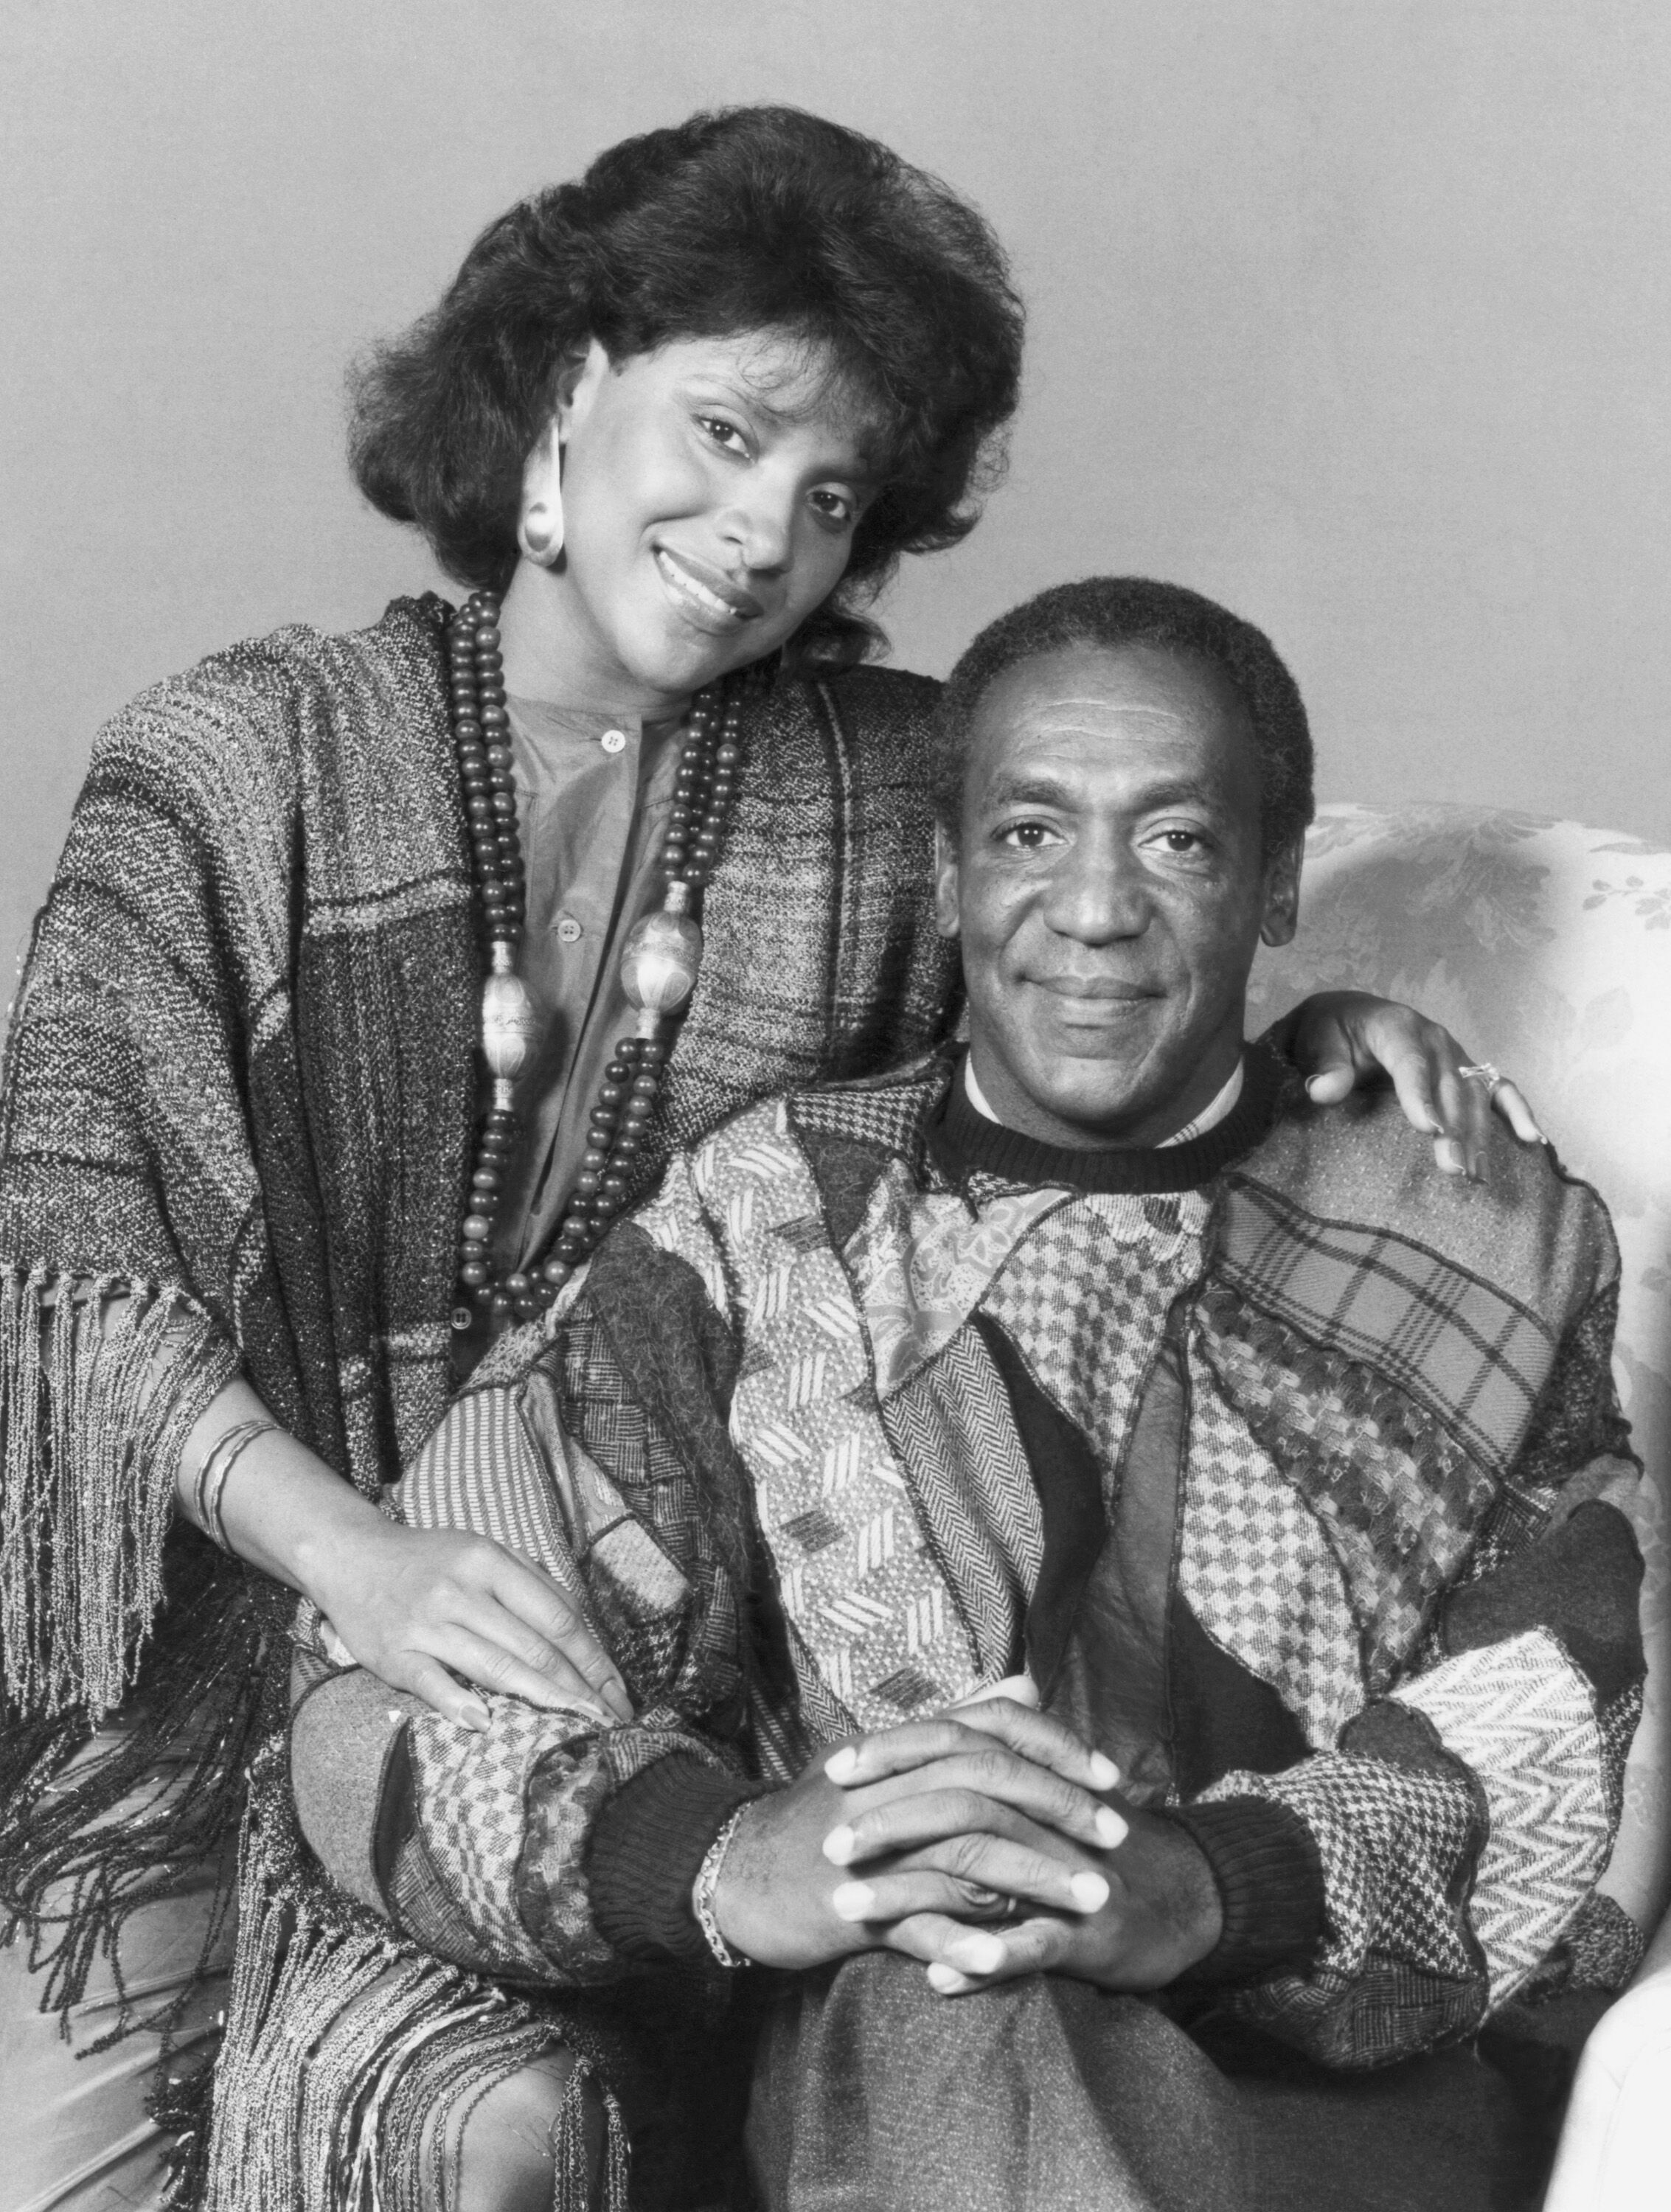 """Phylicia Rashad as Clair Hanks Huxtable, Bill Cosby as Dr. Heathcliff 'Cliff' Huxtable in """"The Cosby Show"""" 